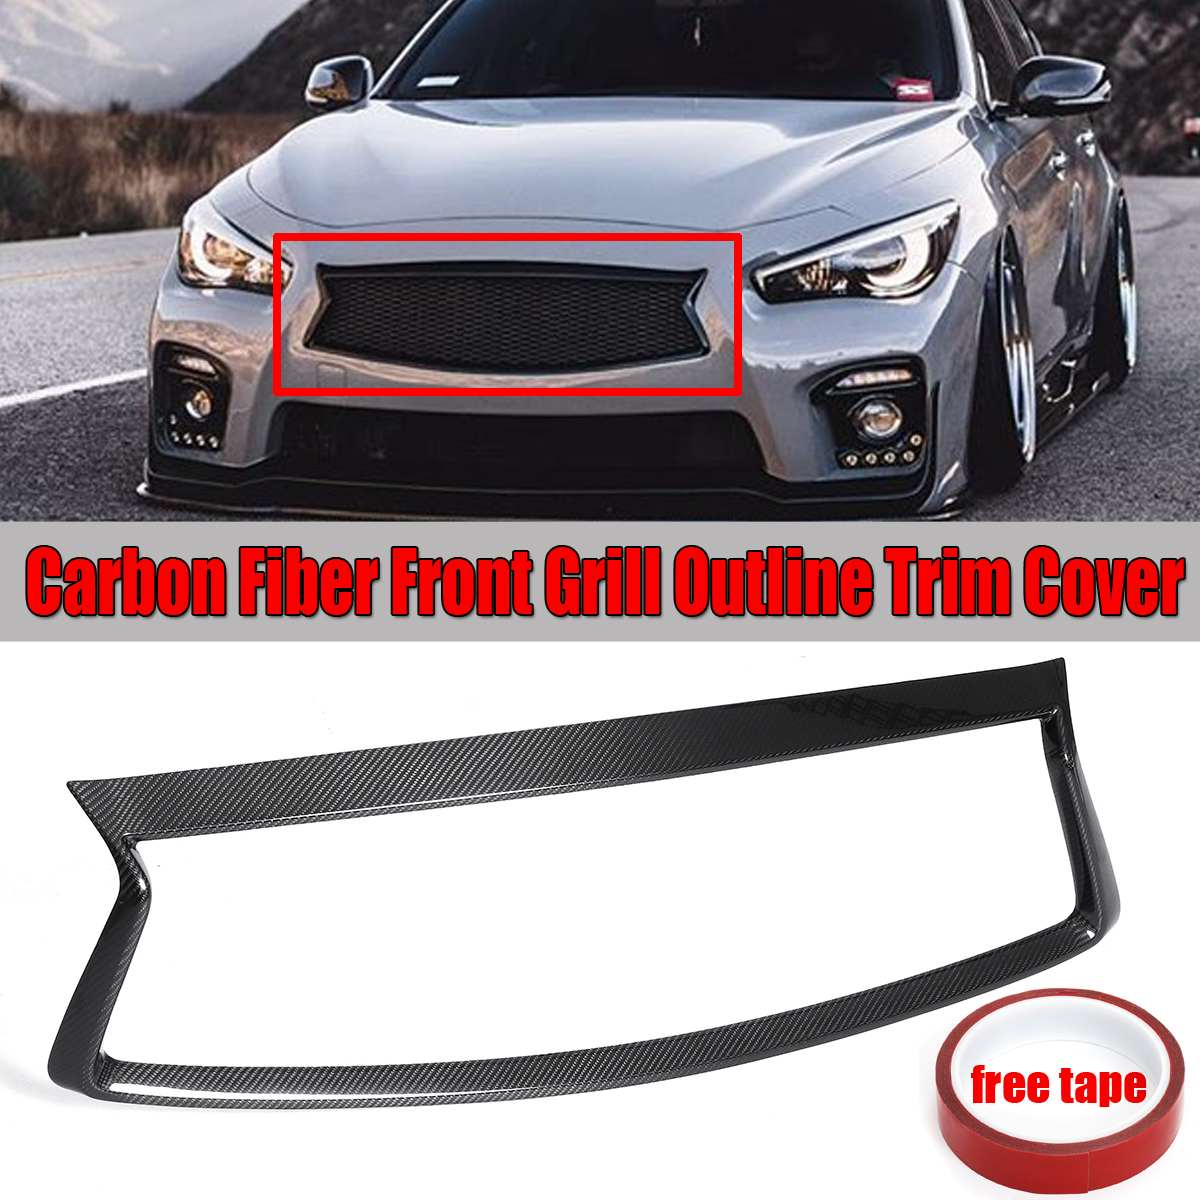 1x Real Carbon Fiber Car Front Bumper Grille Grill Outline Moulding Trim Cover Overlay For Infiniti